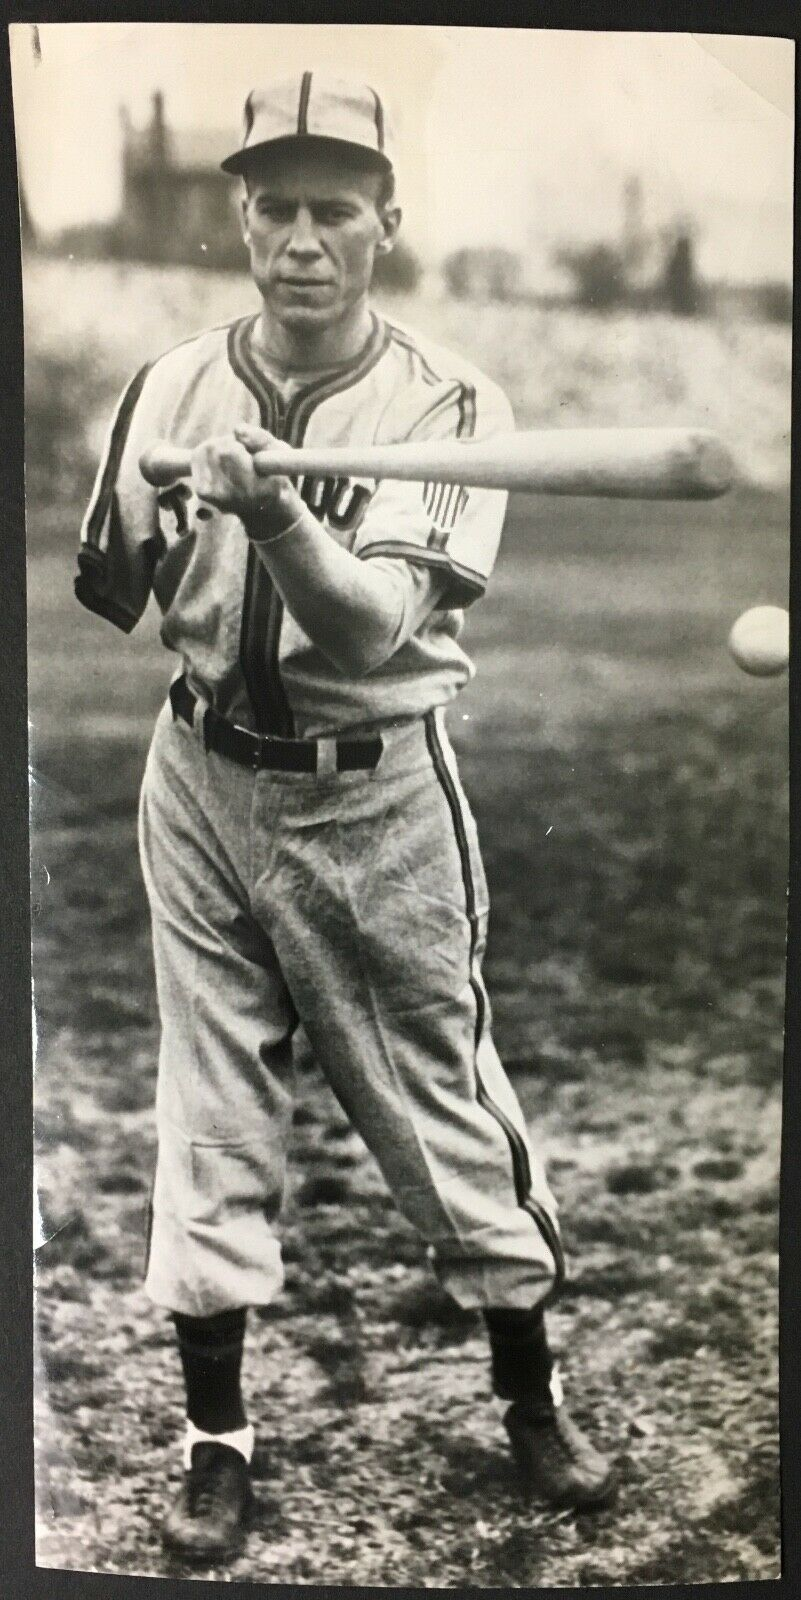 1945 Pete Gray Batting Wire Photo One Armed Major League Baseball St Louis Brown